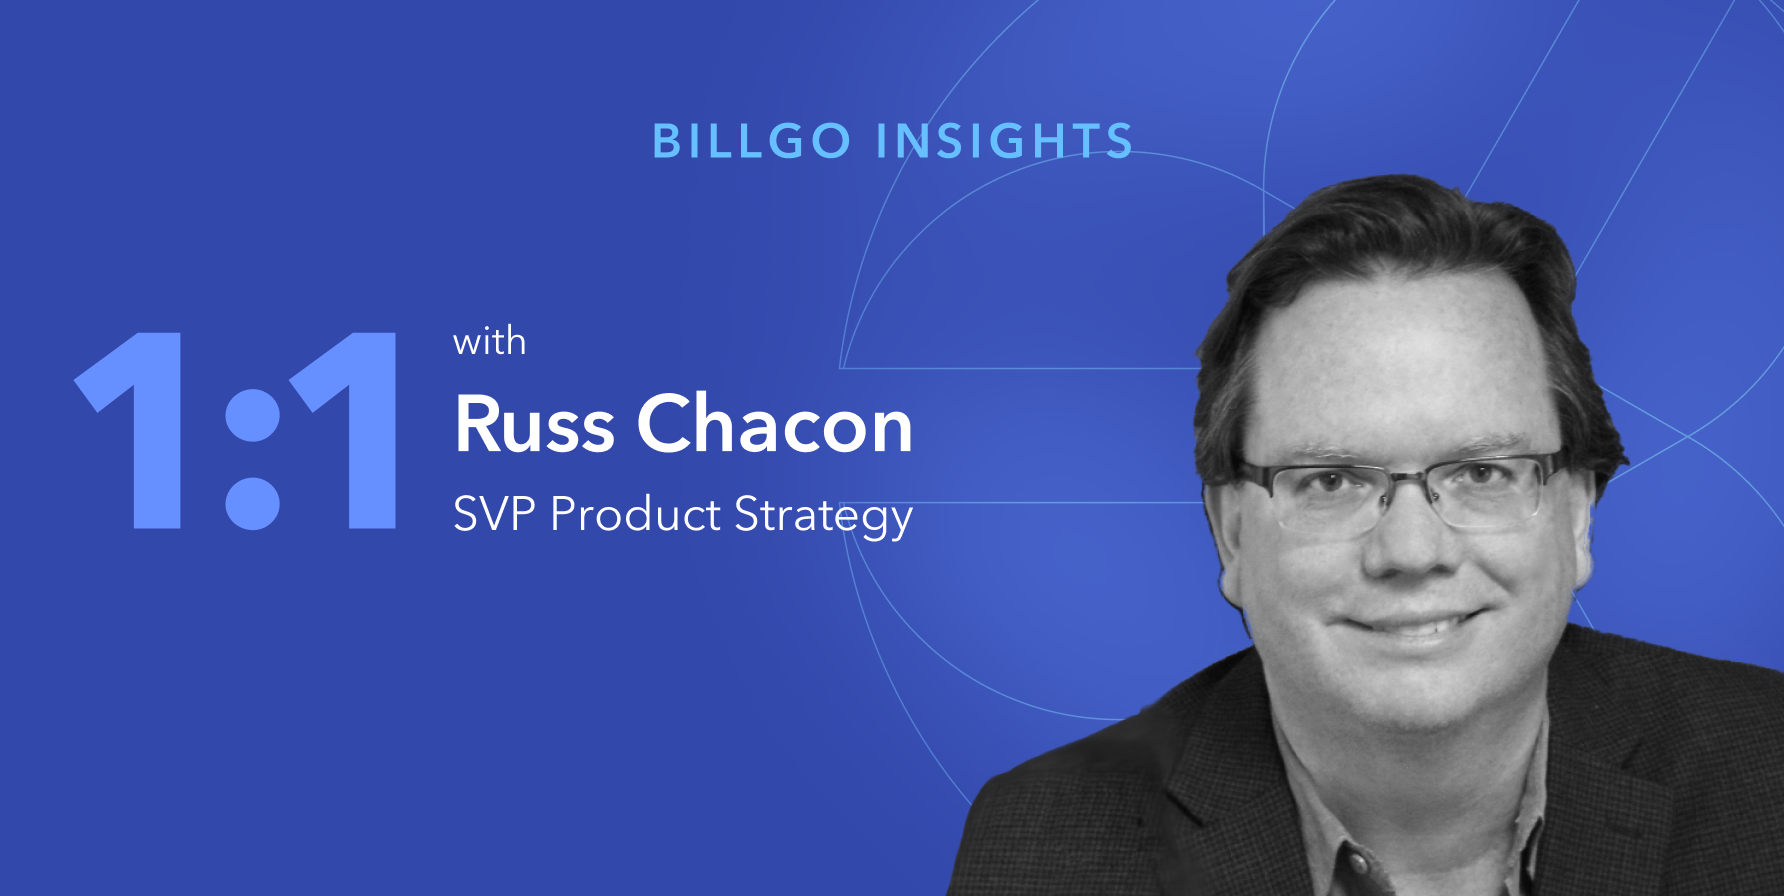 An interview with BillGO's Russ Chacon